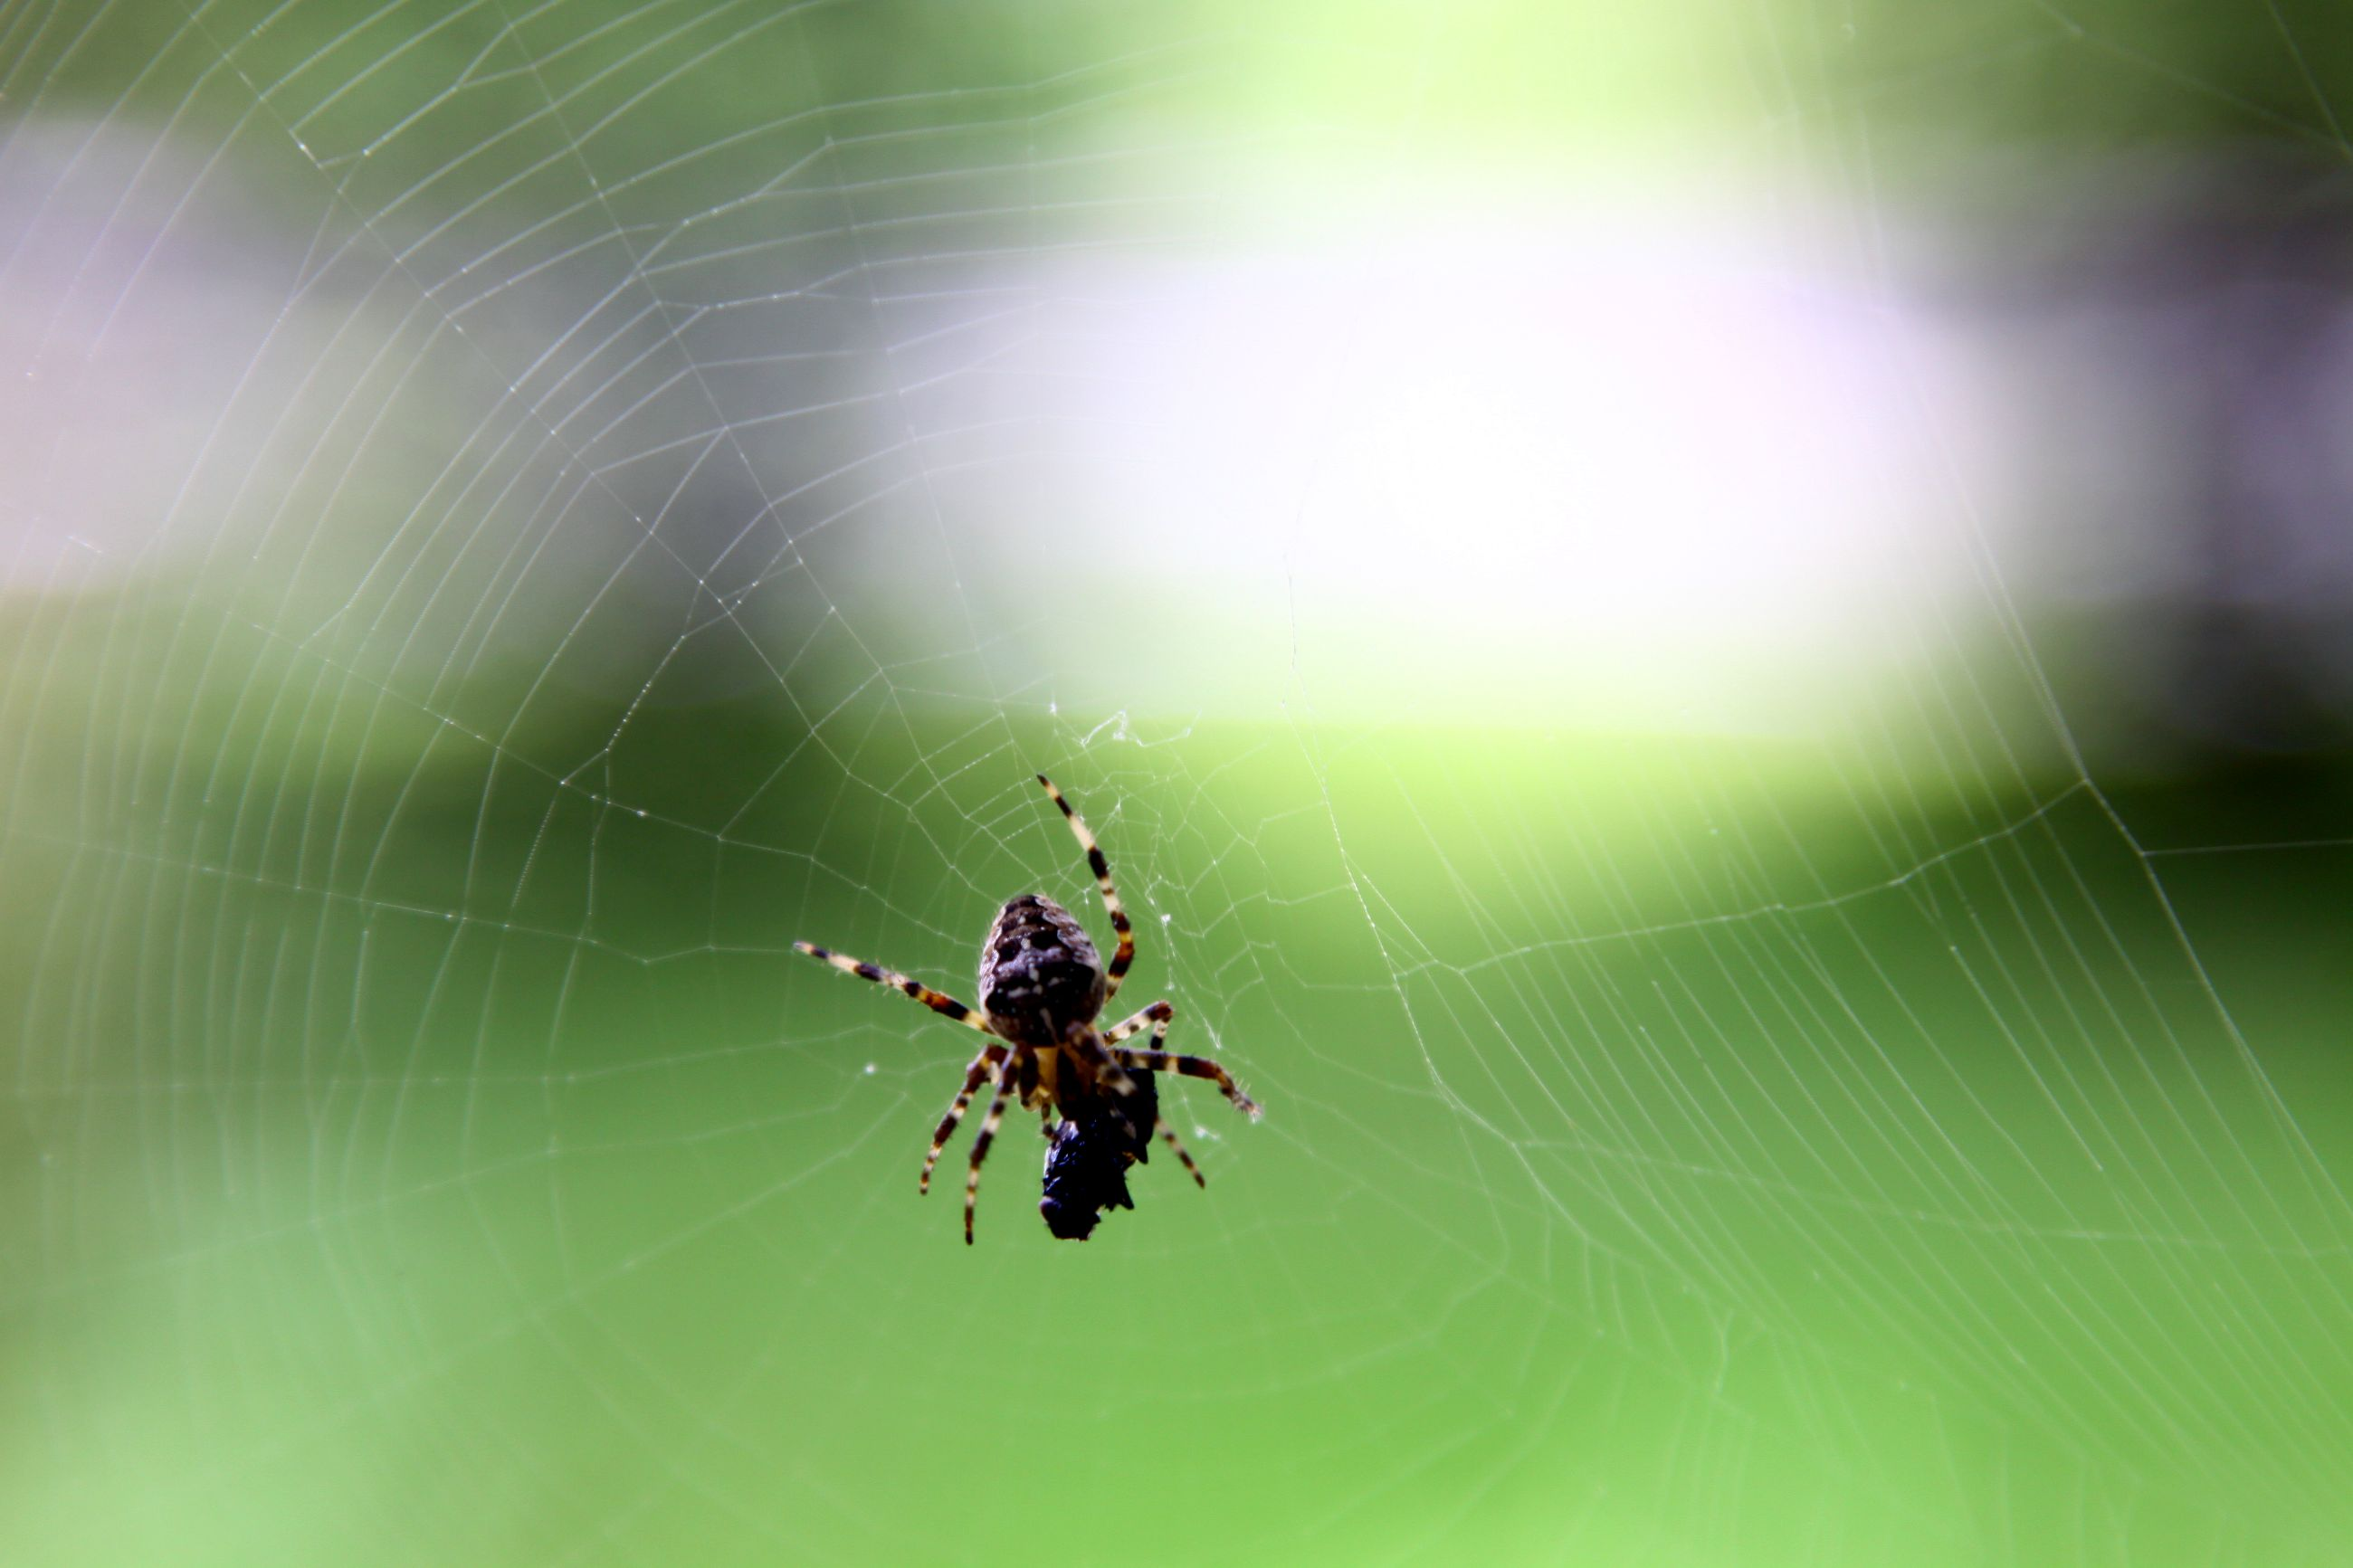 spider and fly 1103 4mp.jpg